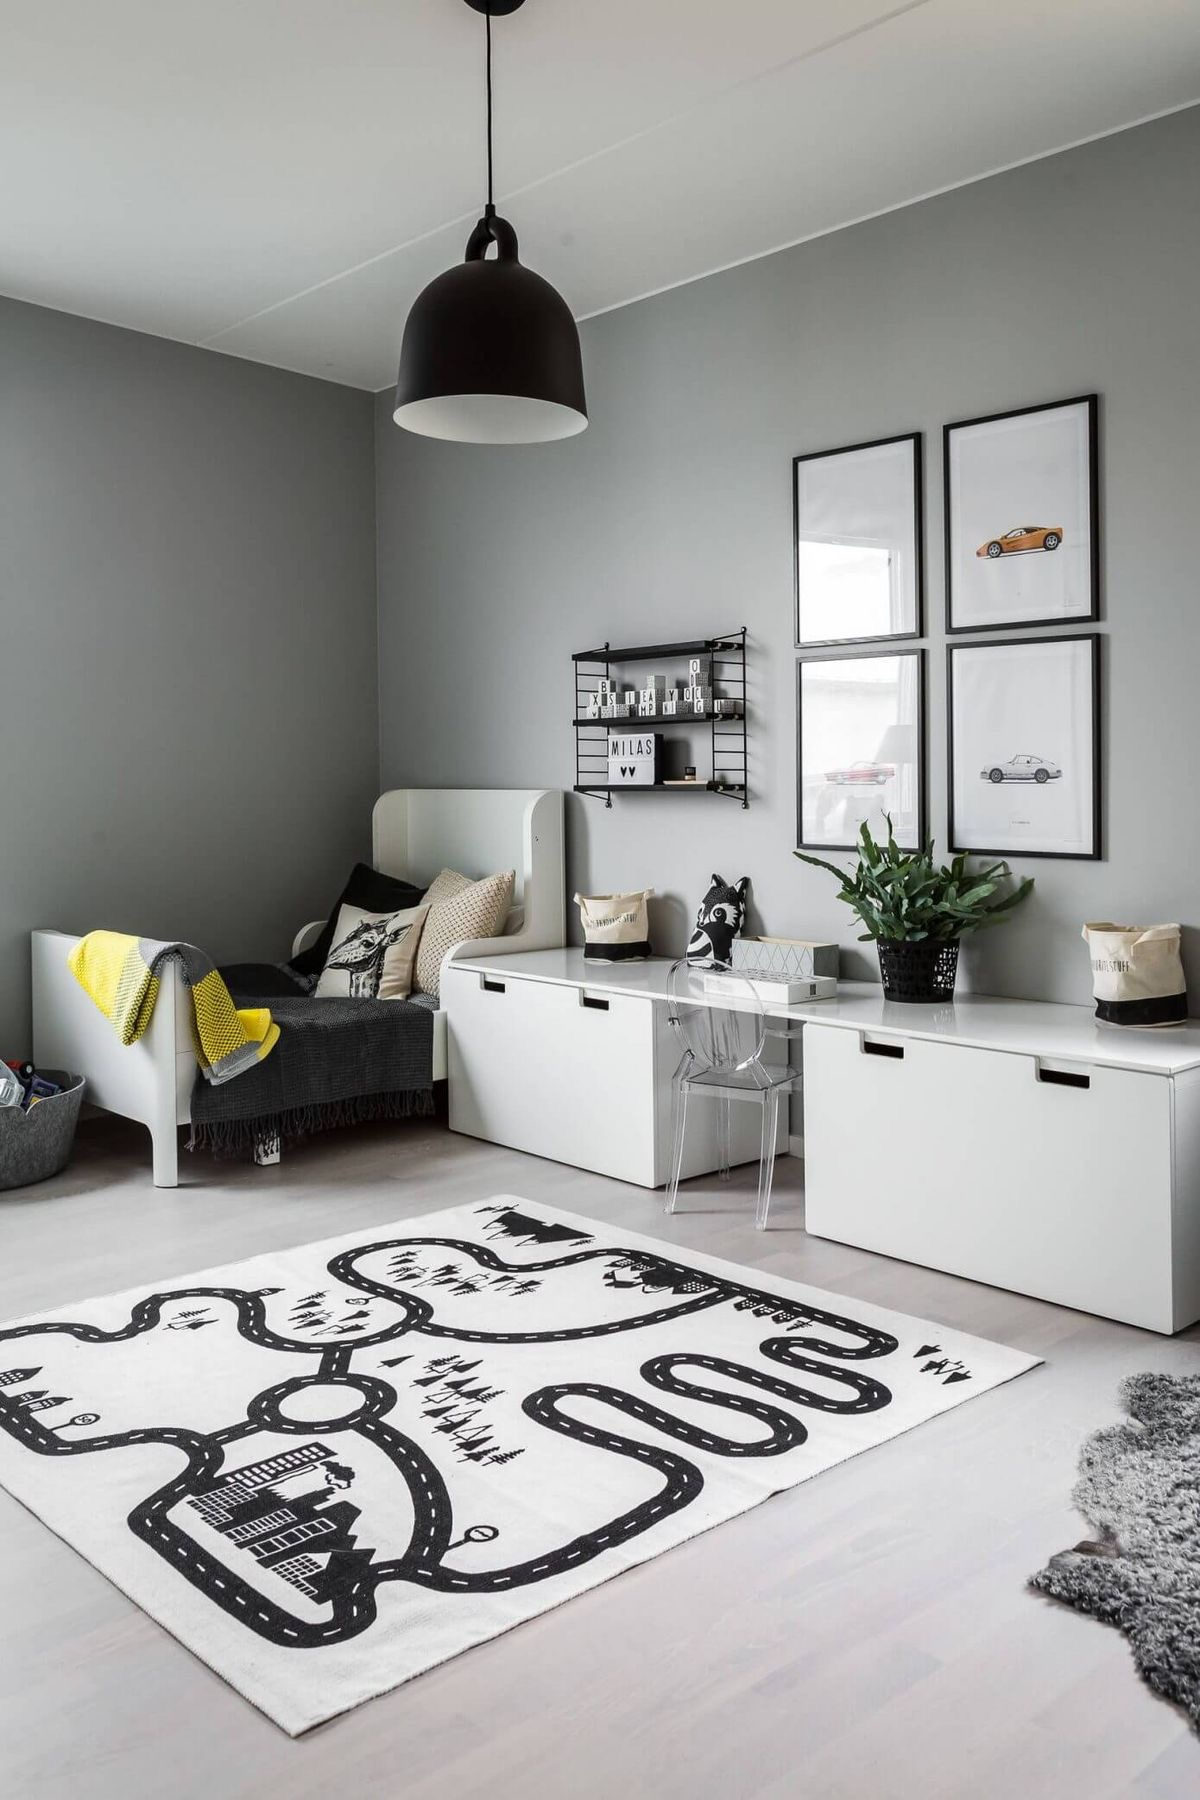 Child's room which will adapt as child grows